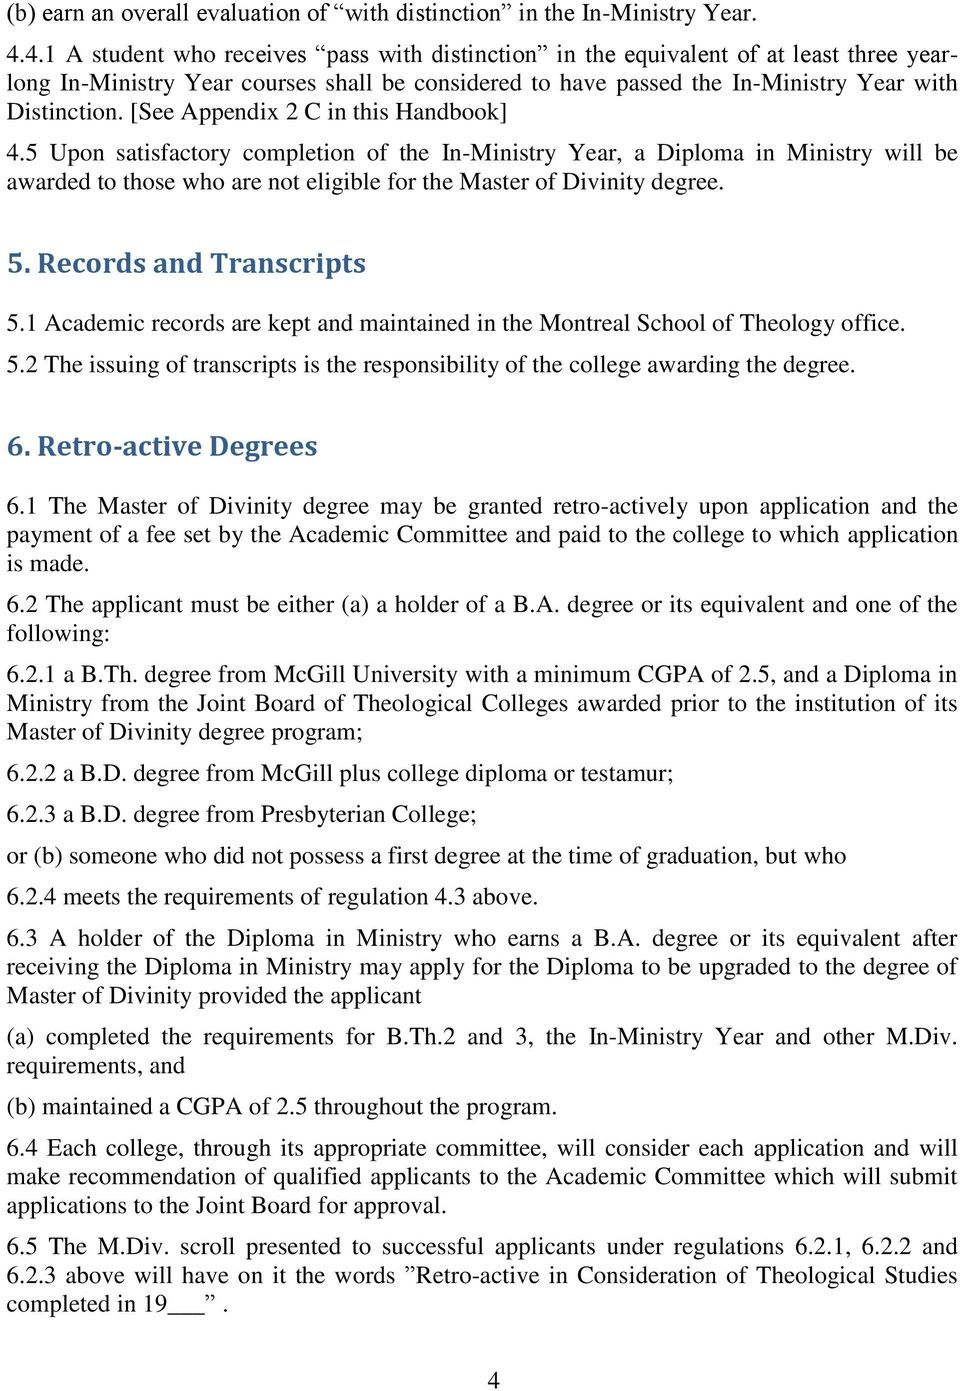 [See Appendix 2 C in this Handbook] 4.5 Upon satisfactory completion of the In-Ministry Year, a Diploma in Ministry will be awarded to those who are not eligible for the Master of Divinity degree. 5.